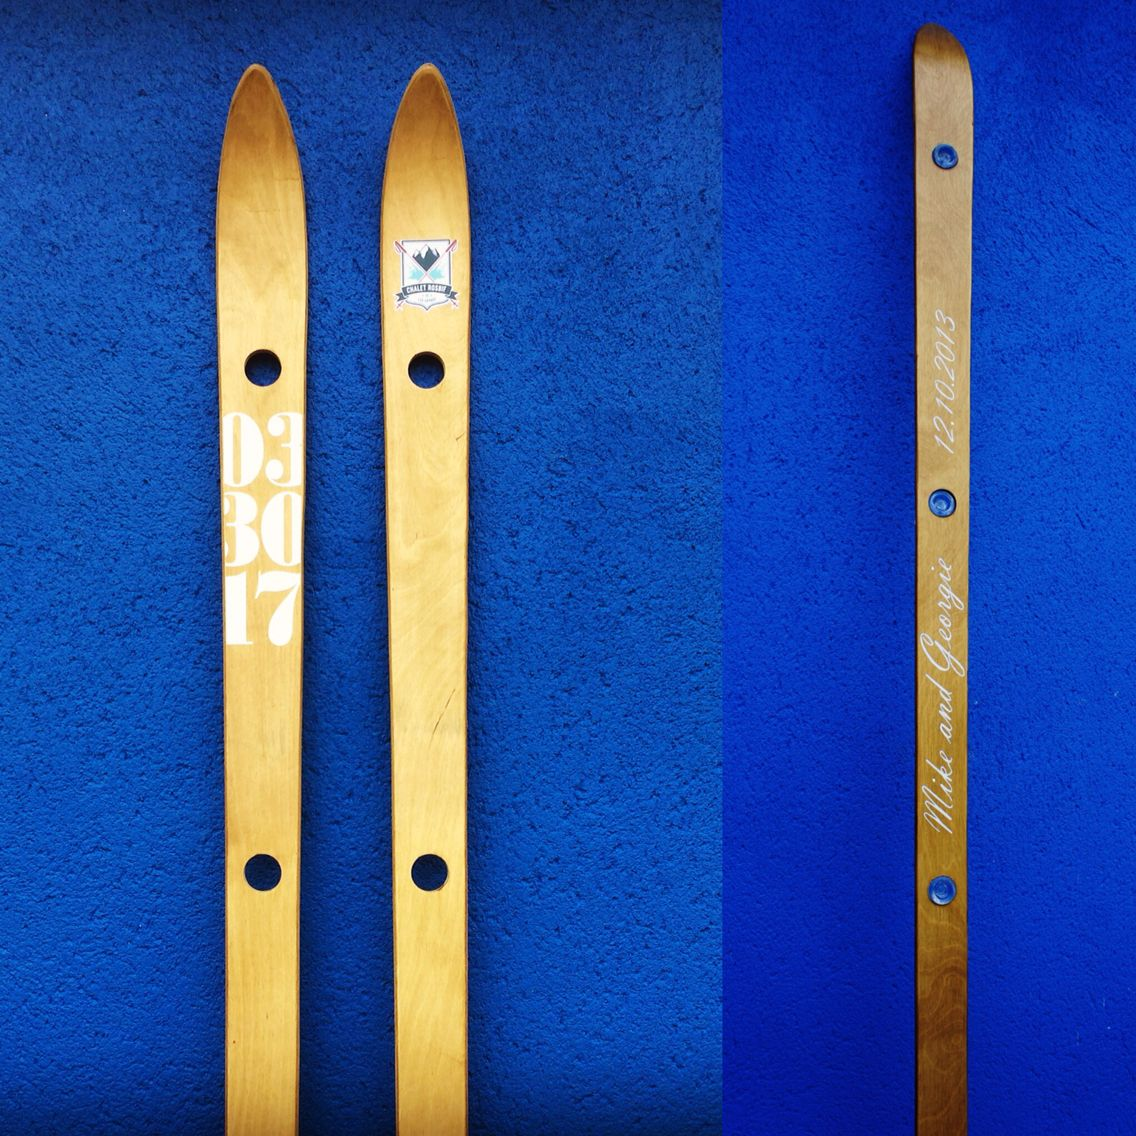 Decorate your shotski however you like with your special